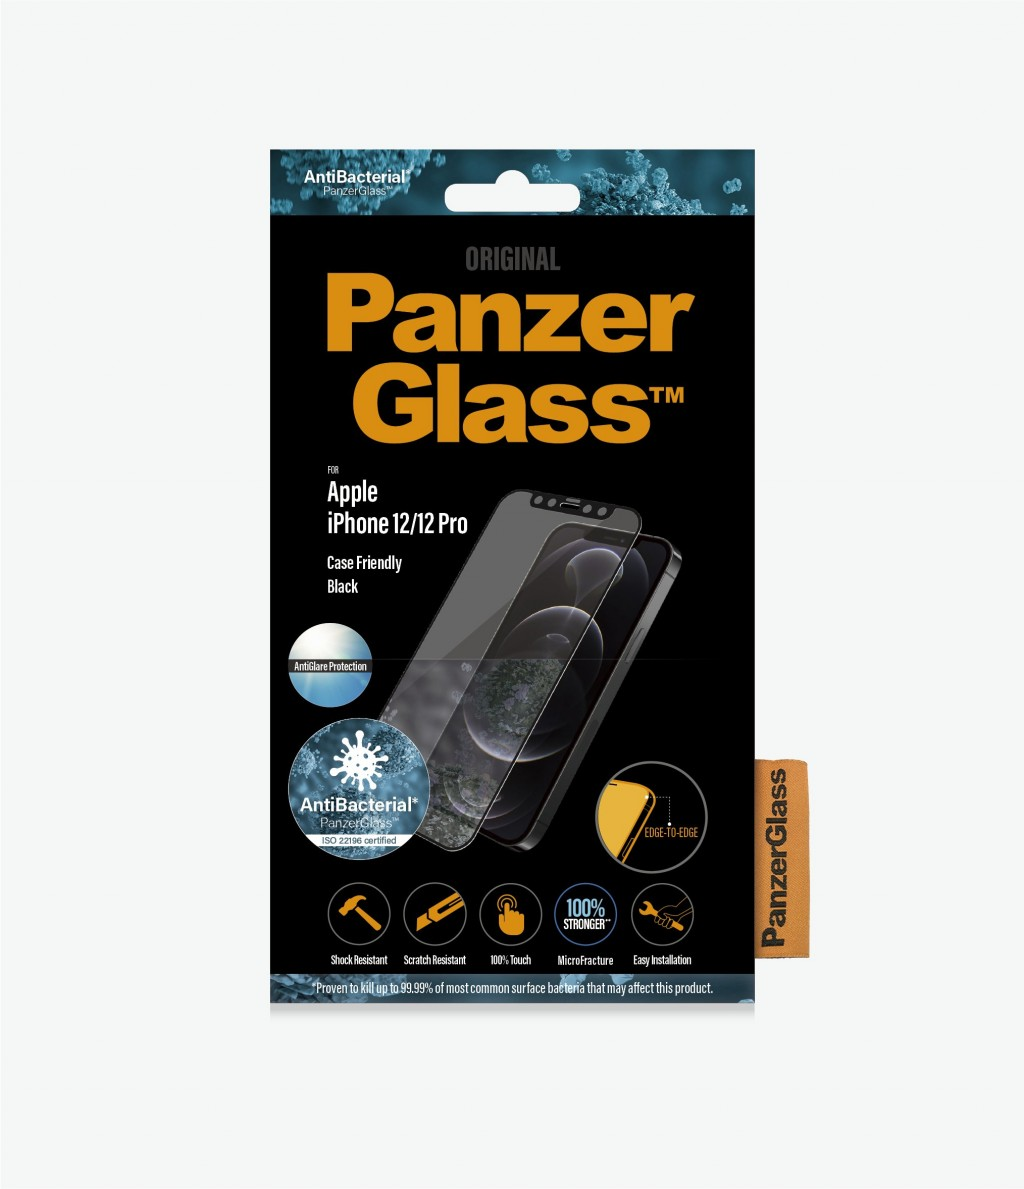 PanzerGlass Apple, iPhone 12/12 Pro, Anti-glare glass, Black, Case Friendly, Antimicrobial